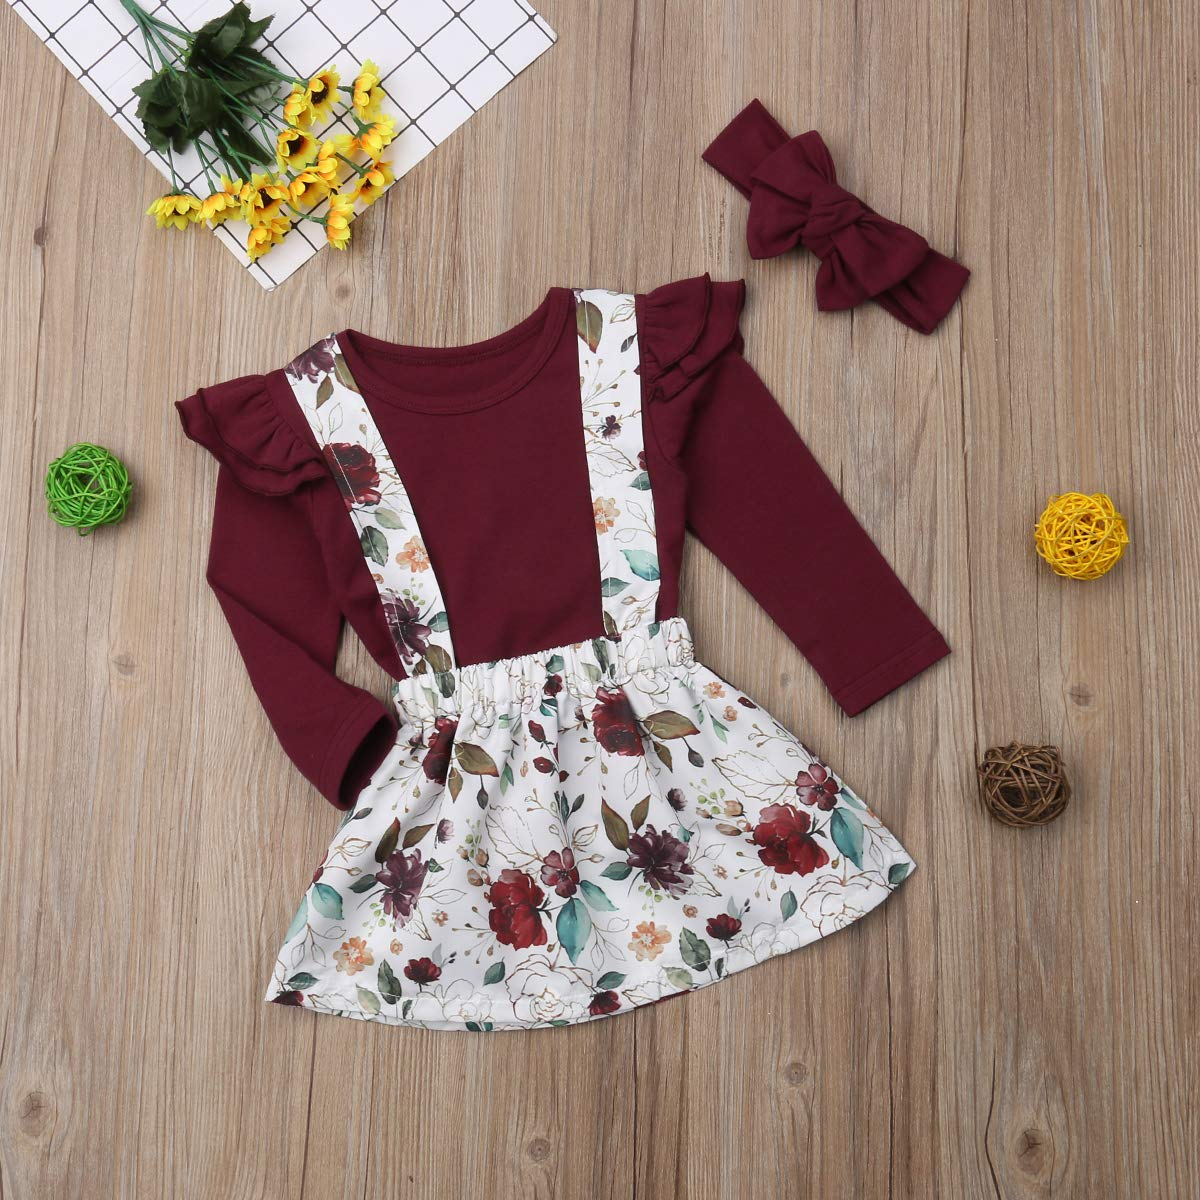 Toddler Kids Baby Girls Cute Solid Color T-shirt Top+Flower Party Tutu Princess Skirt Headband Outfits Set